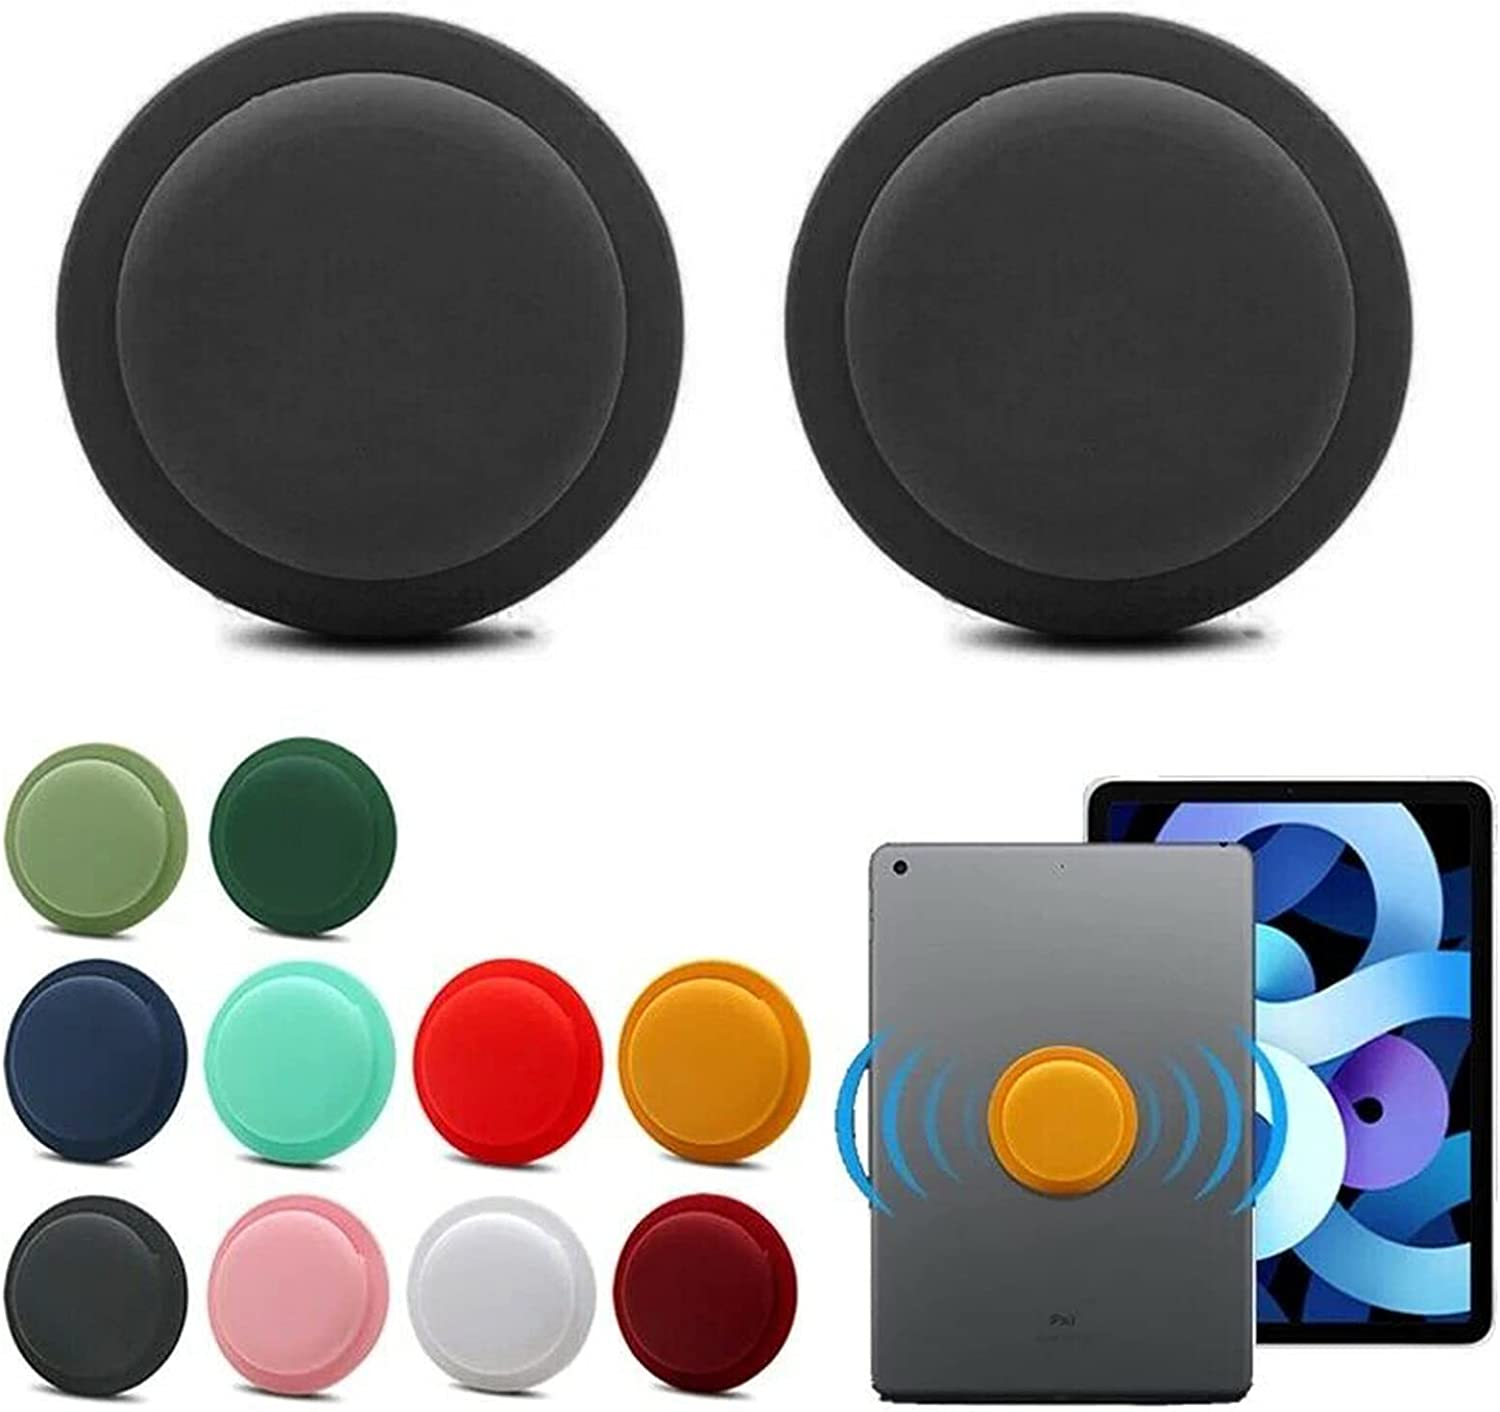 S-SNAIL-OO for Apple Airtag Case Adhesive - Silicone Protective Case for Apple Airtag GPS Location Tracker Back Adhesive Mount Cover Silicone Protective Sleeve Cover Safety and Anti-Lost (2-Black)